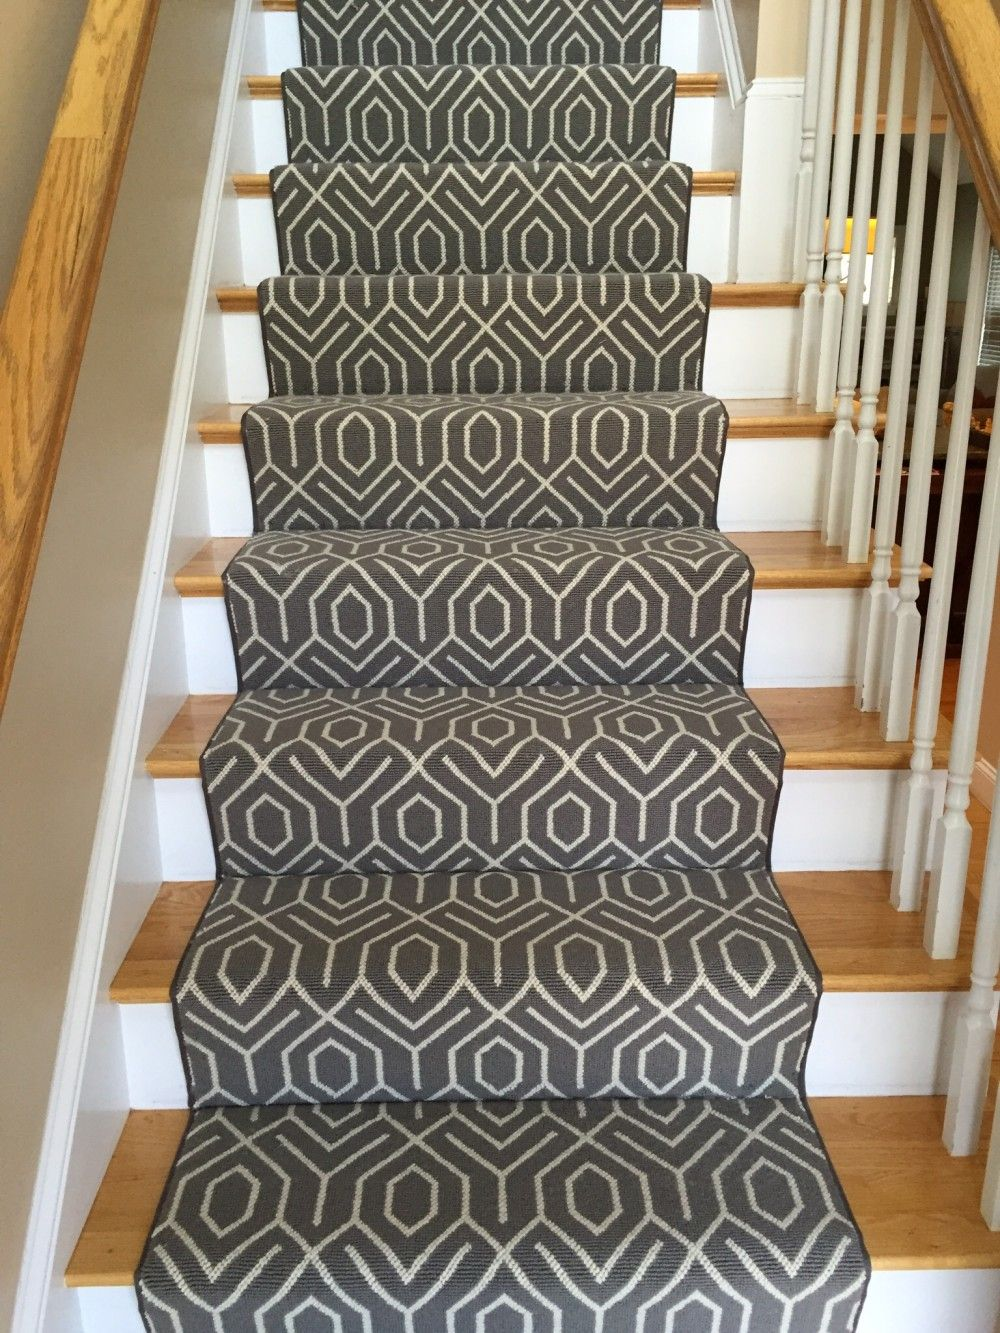 Stair Runner Carpet At Lowes Stair Runner Carpet Carpet Stairs   Carpet For Stairs Lowes   Hard Wearing   Traditional   Dean Wrap Around Treads   Pattern   Textured